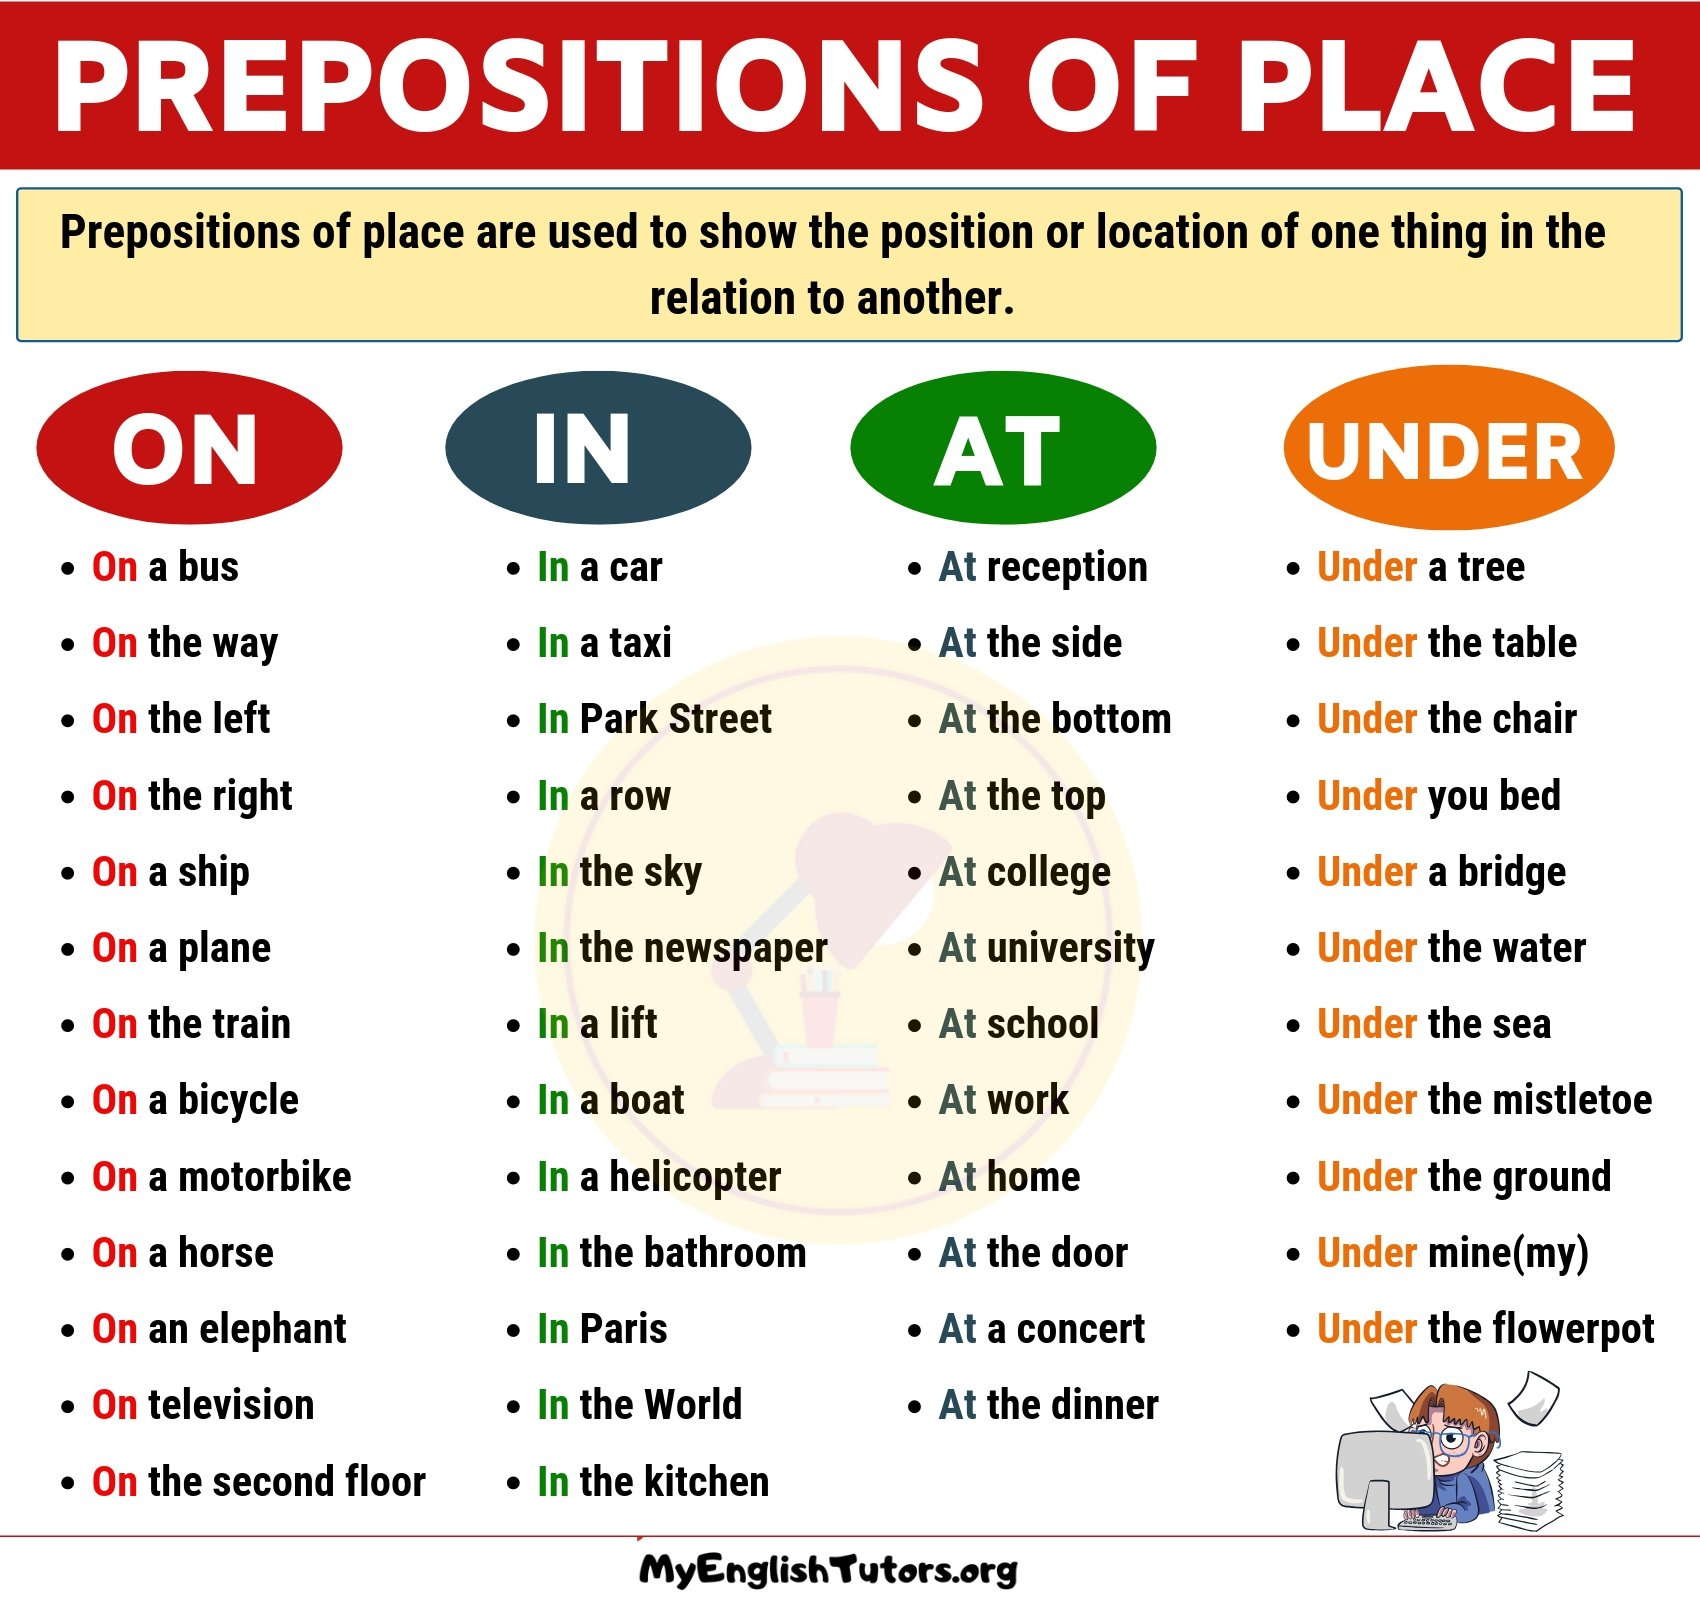 Preposition Examples: List of Common Prepositions of Place in English